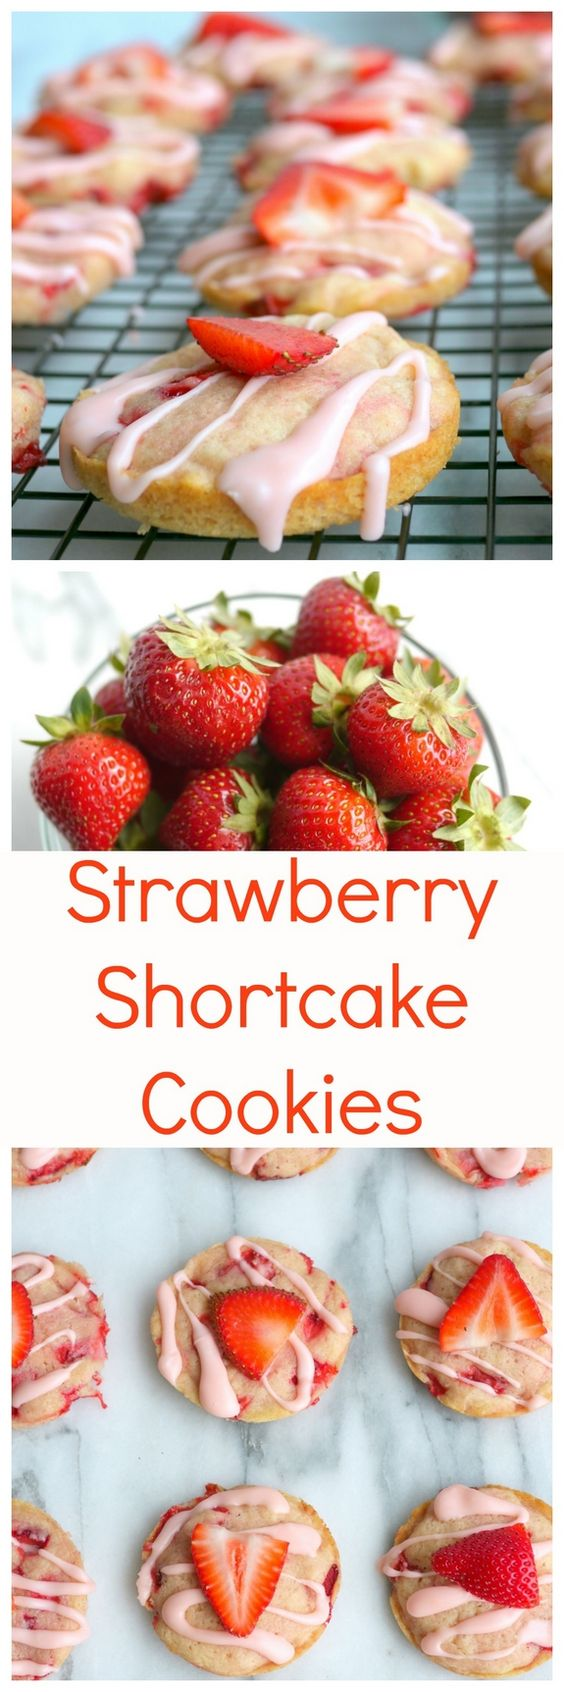 Baked Strawberry Shortcake Cookies | Recipe | Strawberry shortcake ...